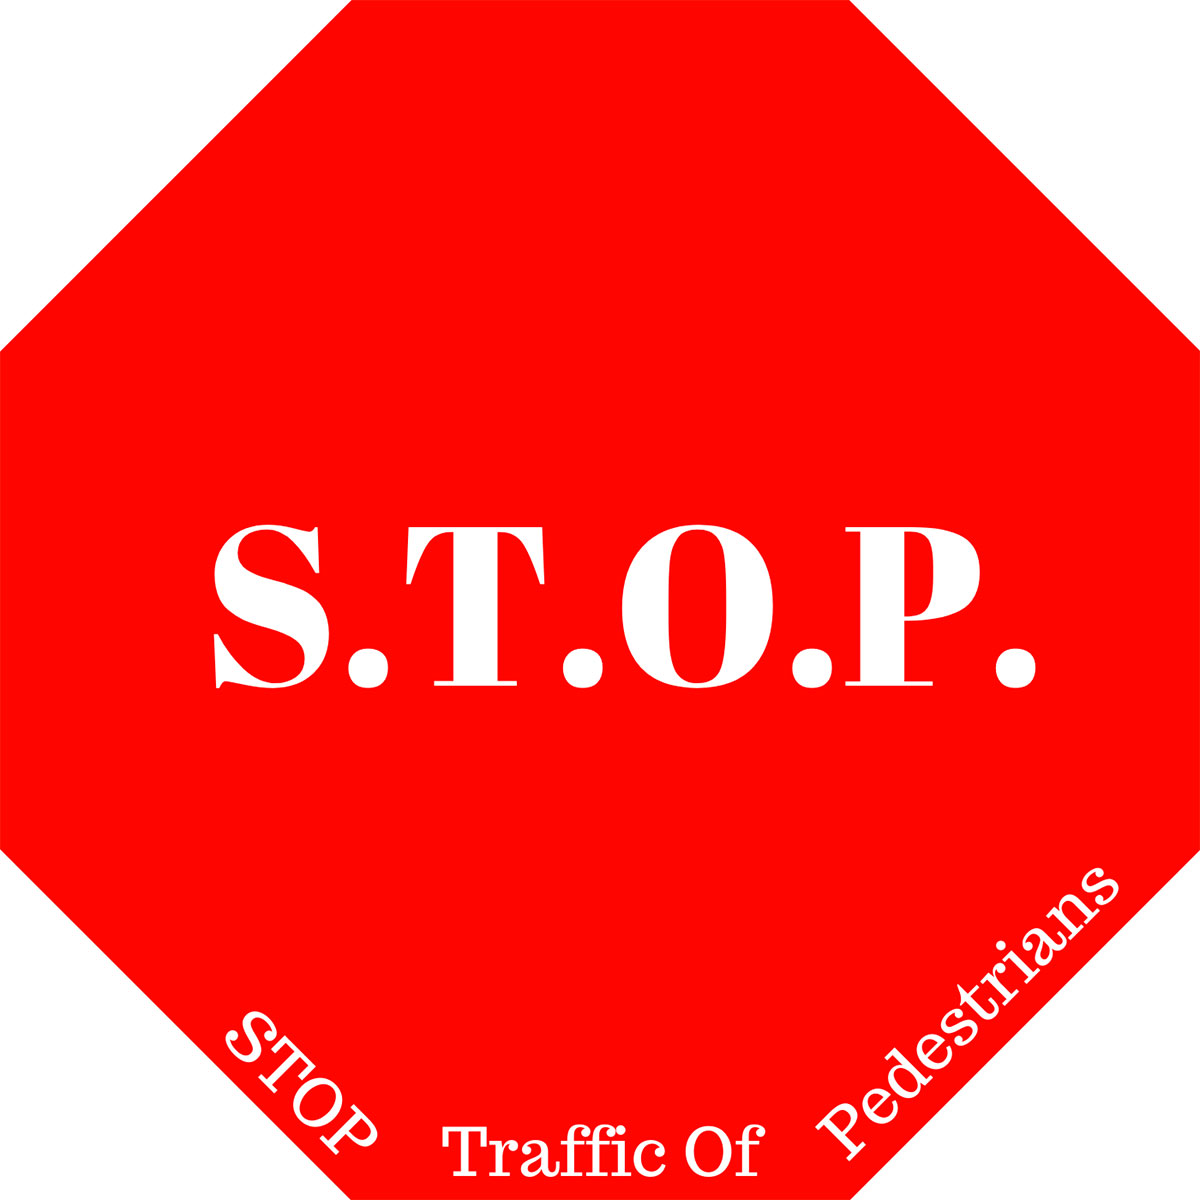 STOP (Stop Traffic Of Pedestrians